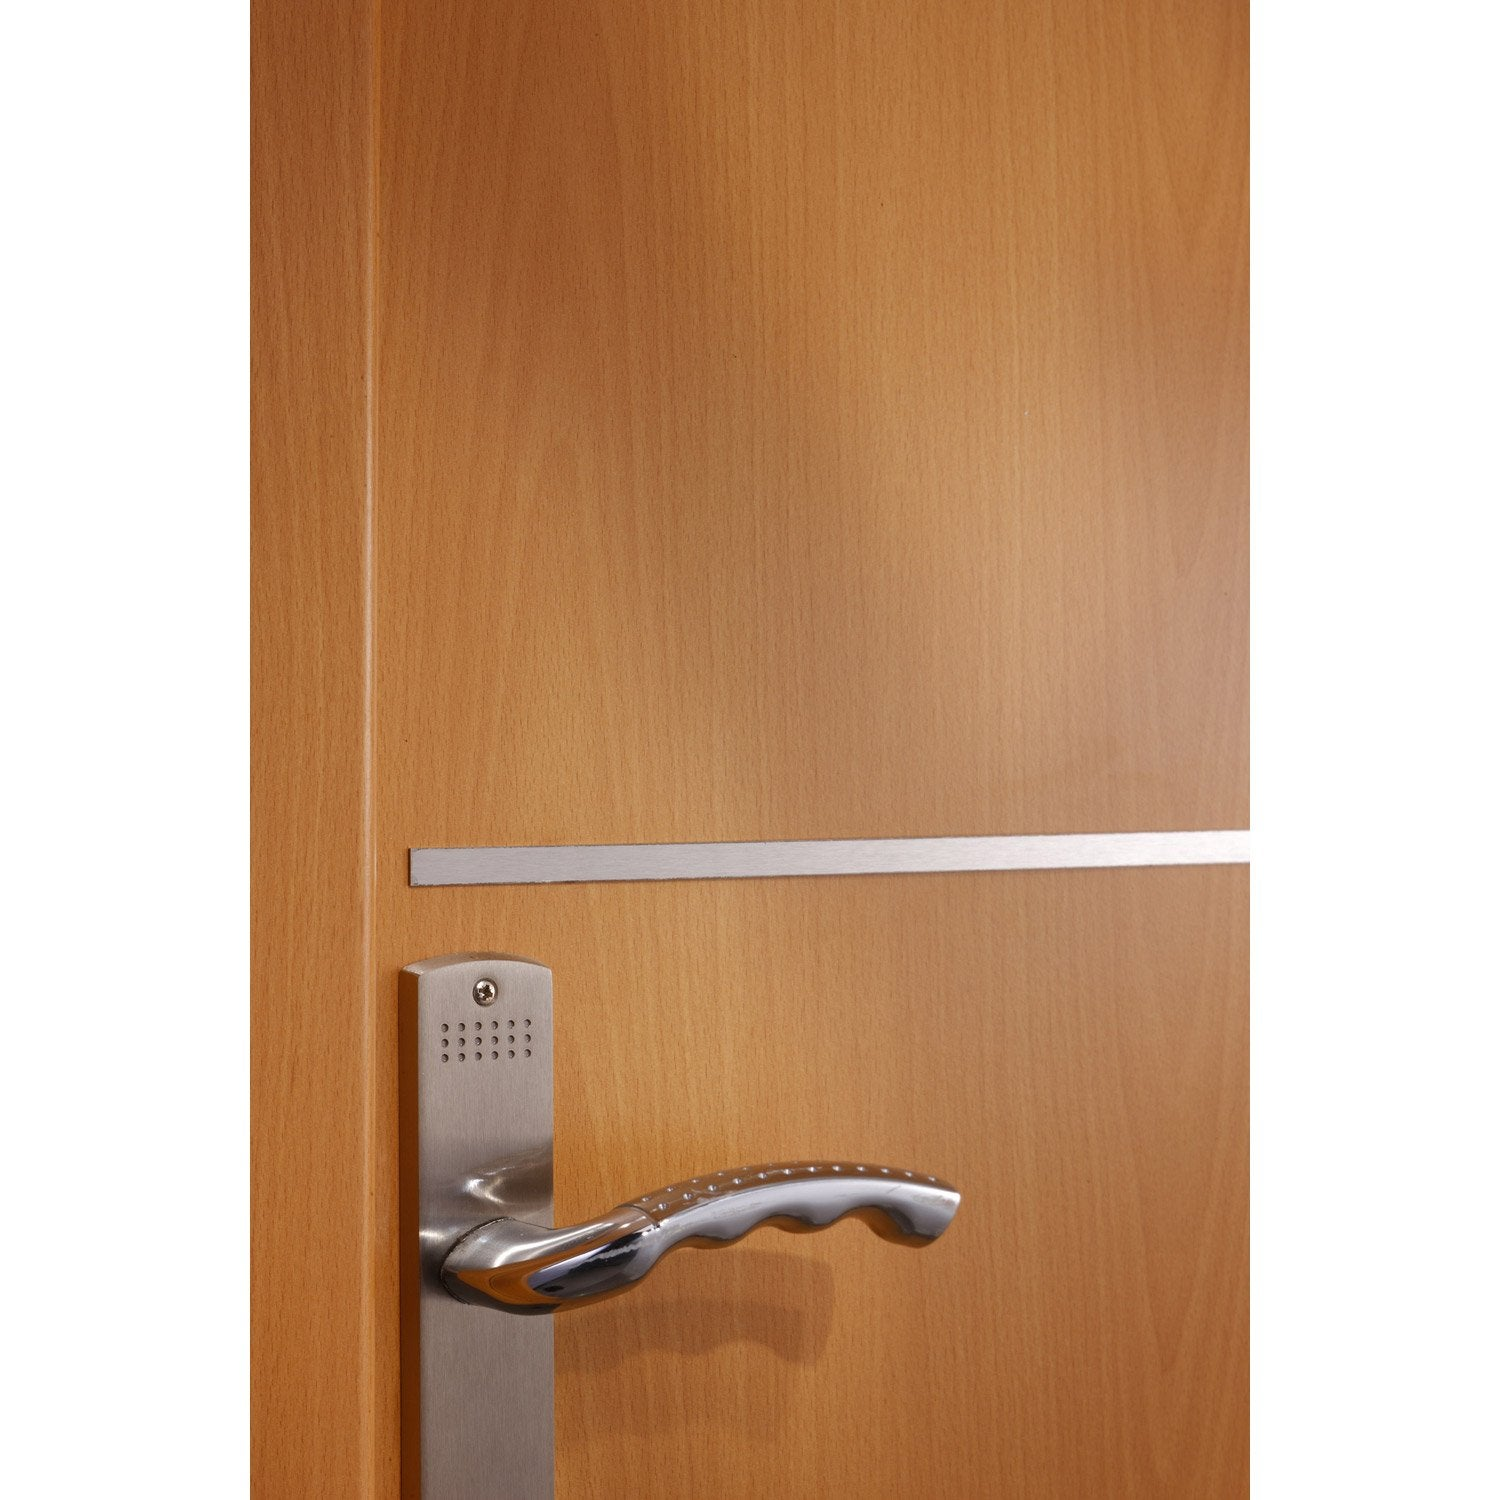 Lot de 4 listels recoupable pour porte de 83 cm inox leroy merlin - Decor de portes interieures ...